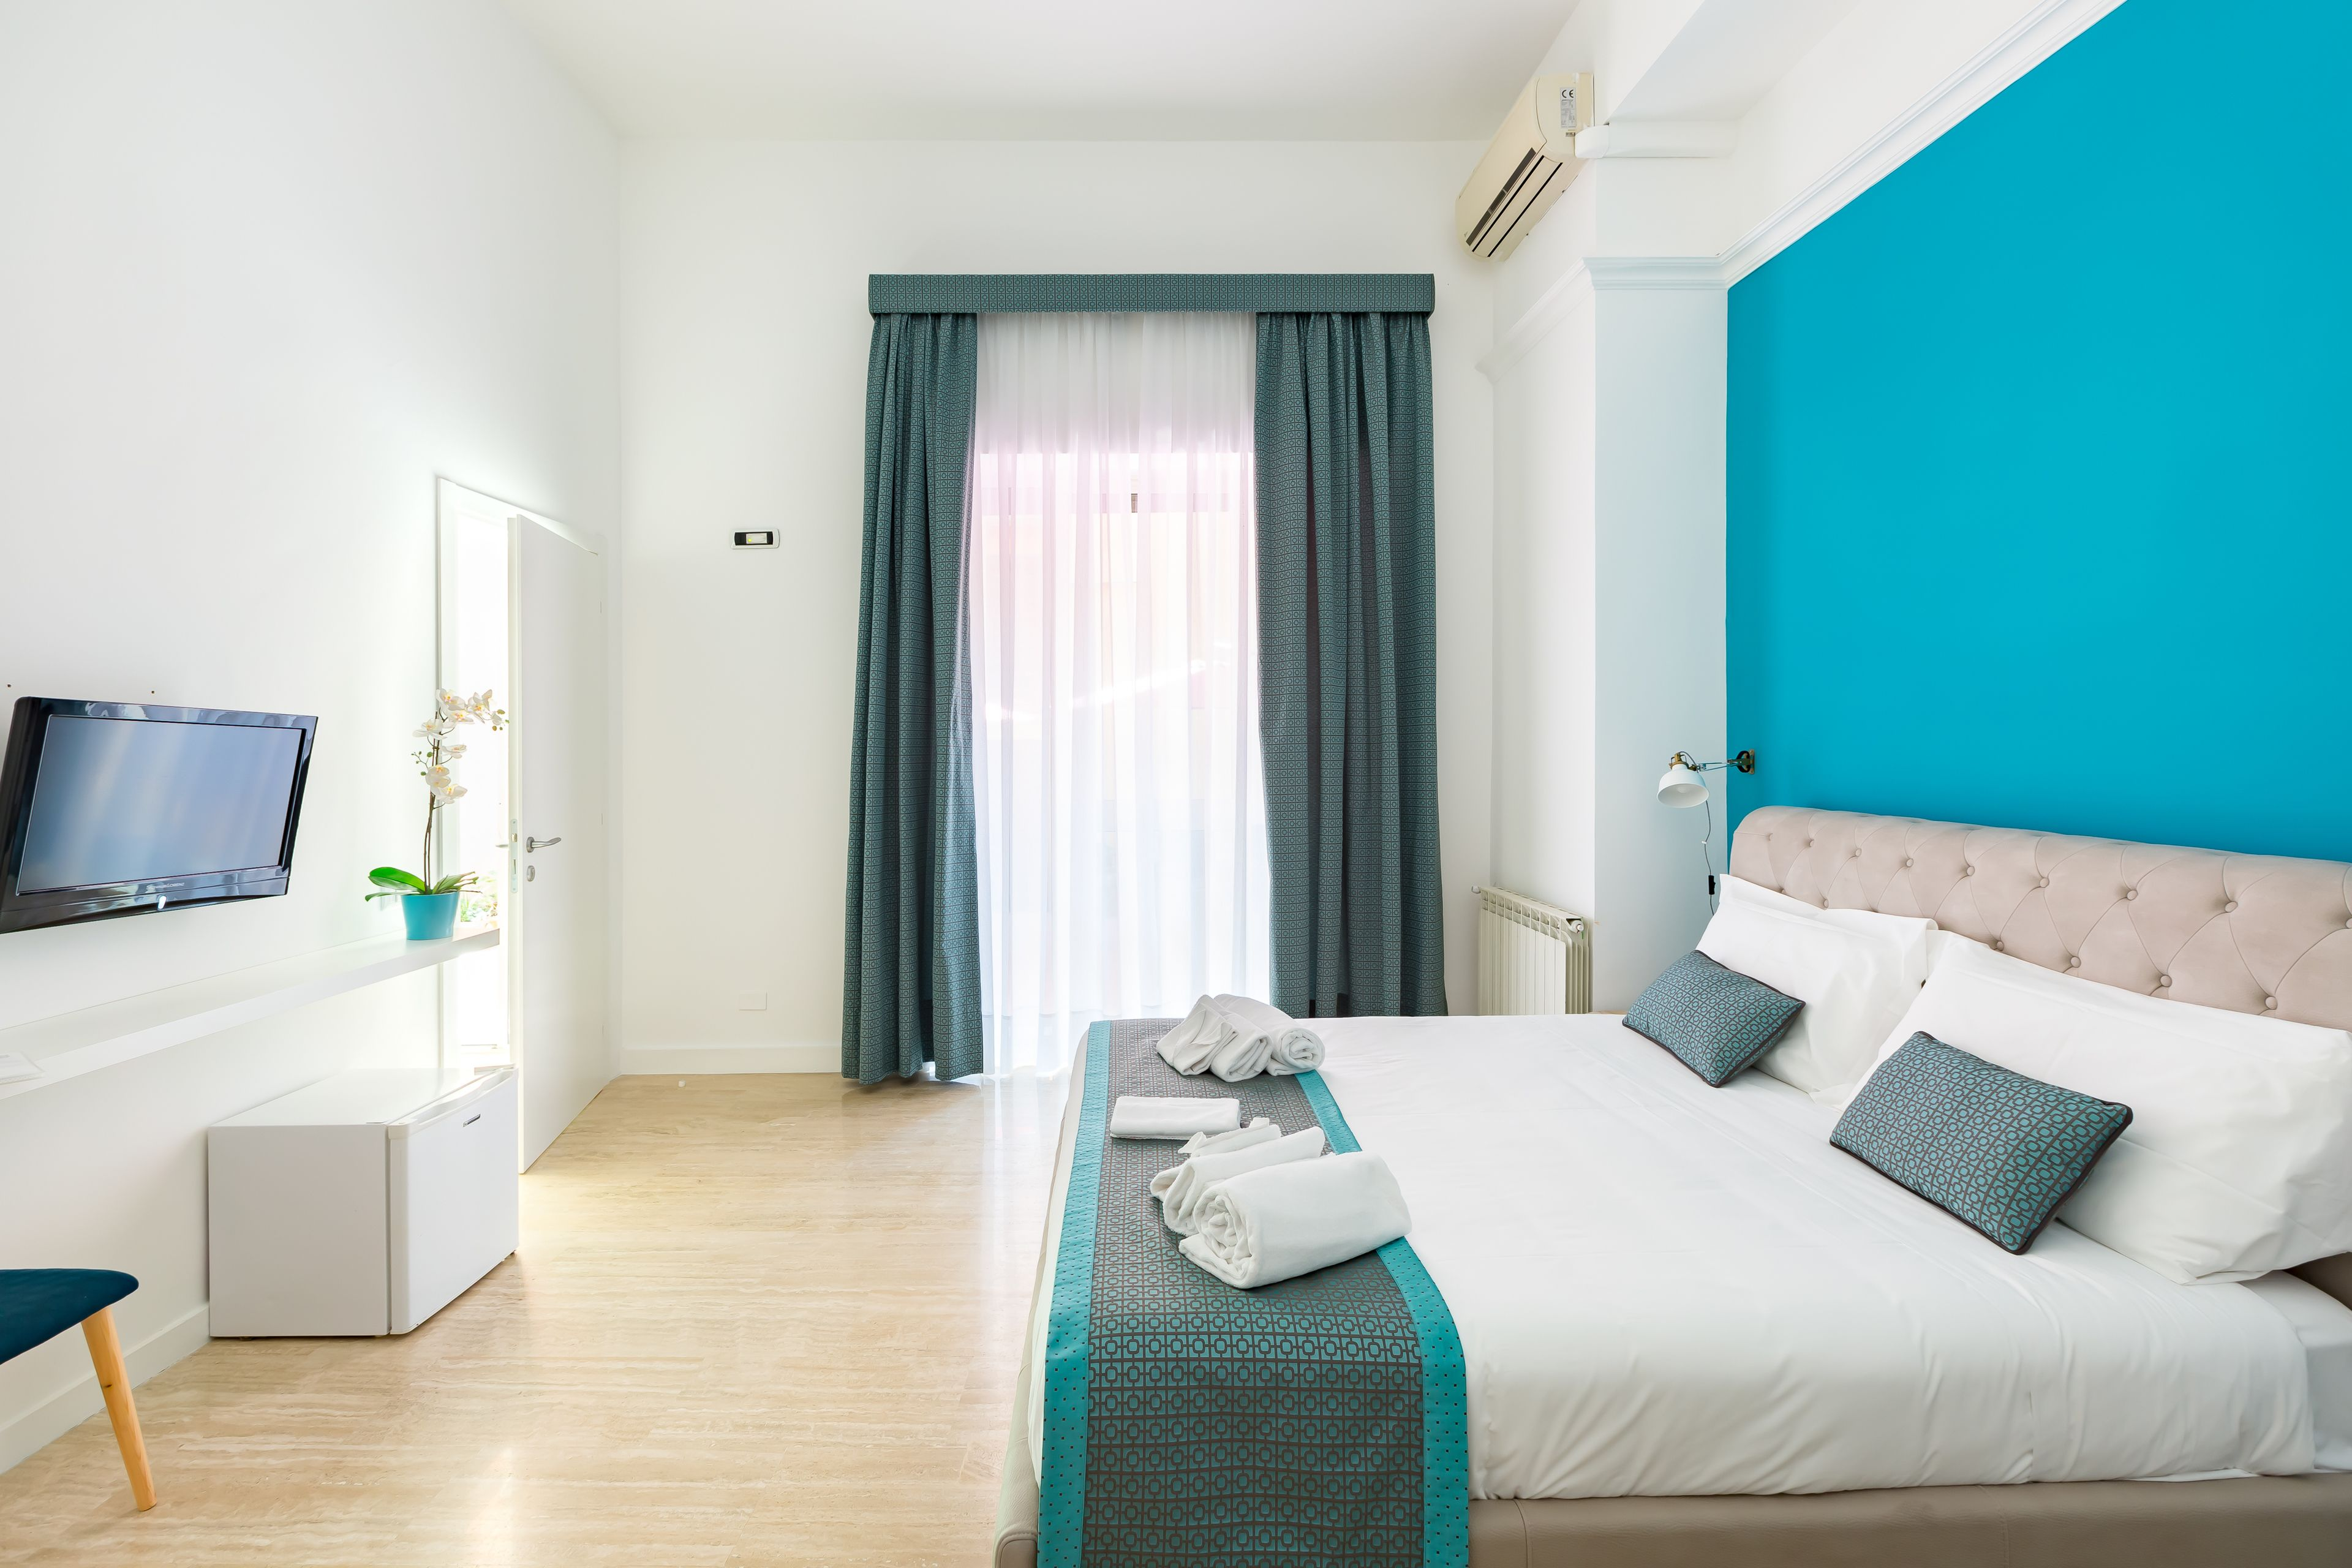 Trevi Fountain Guesthouse